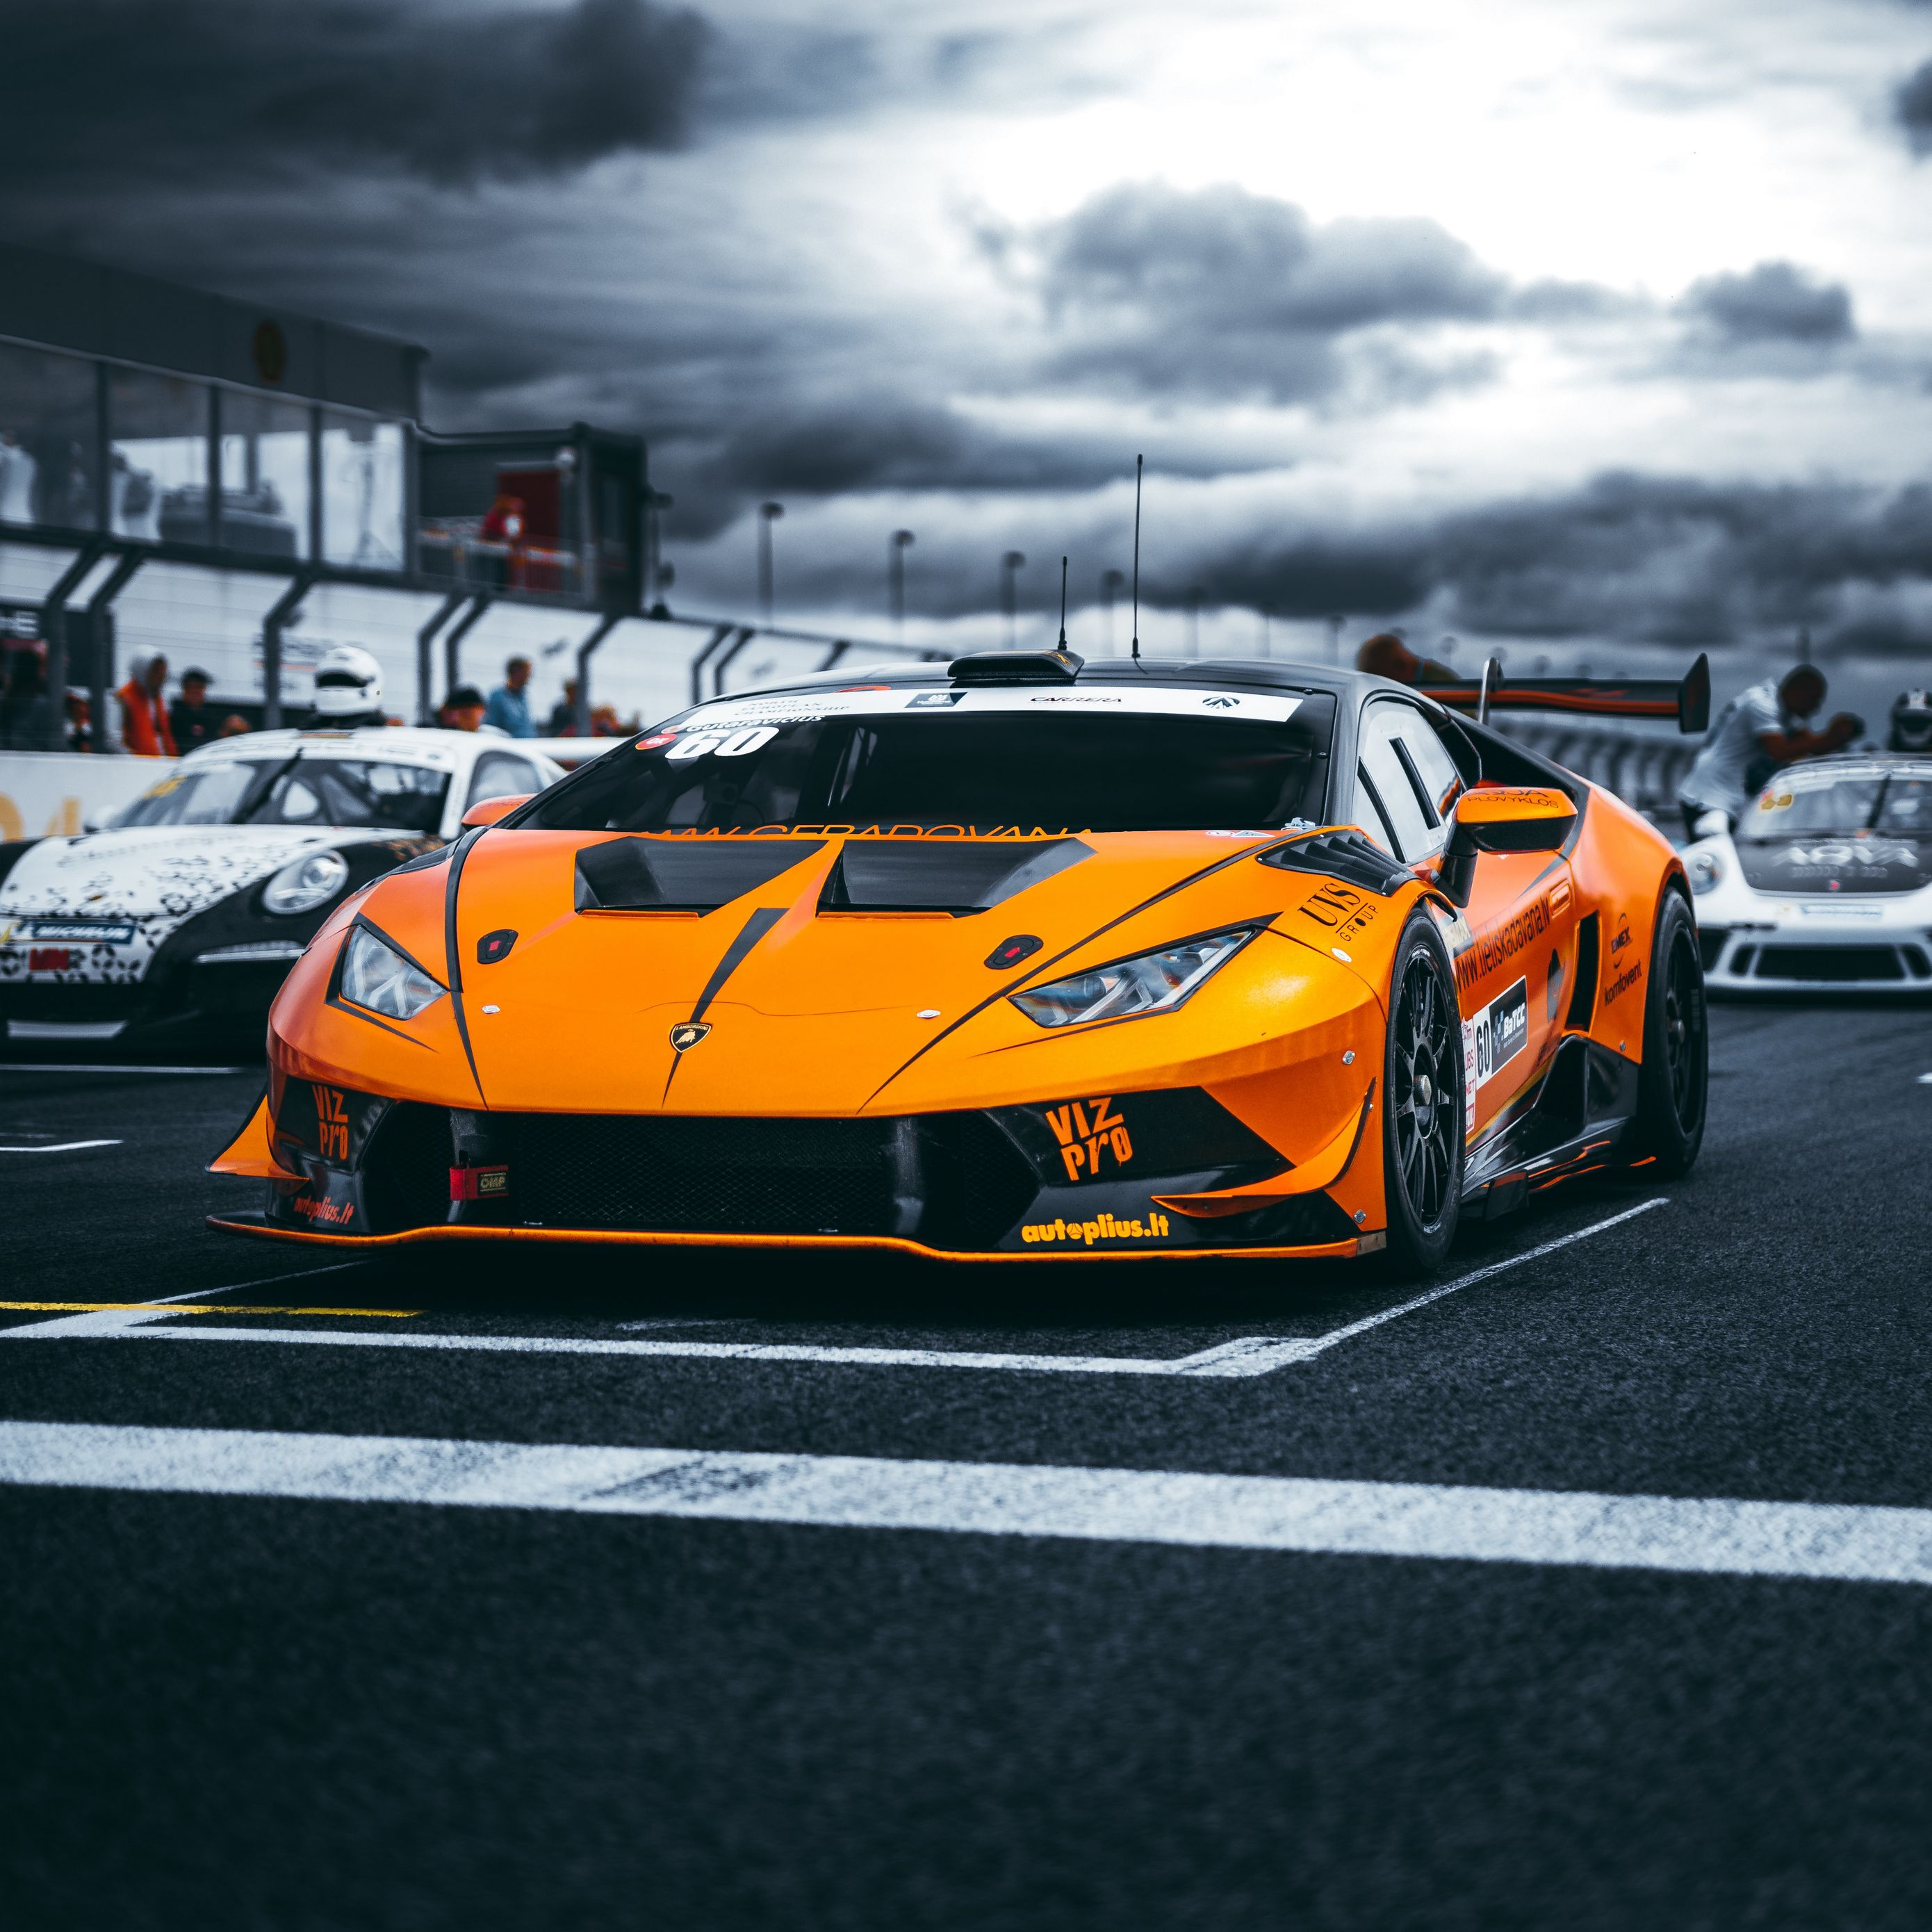 2780x2780 Wallpaper lamborghini, car, sports car, orange, racing